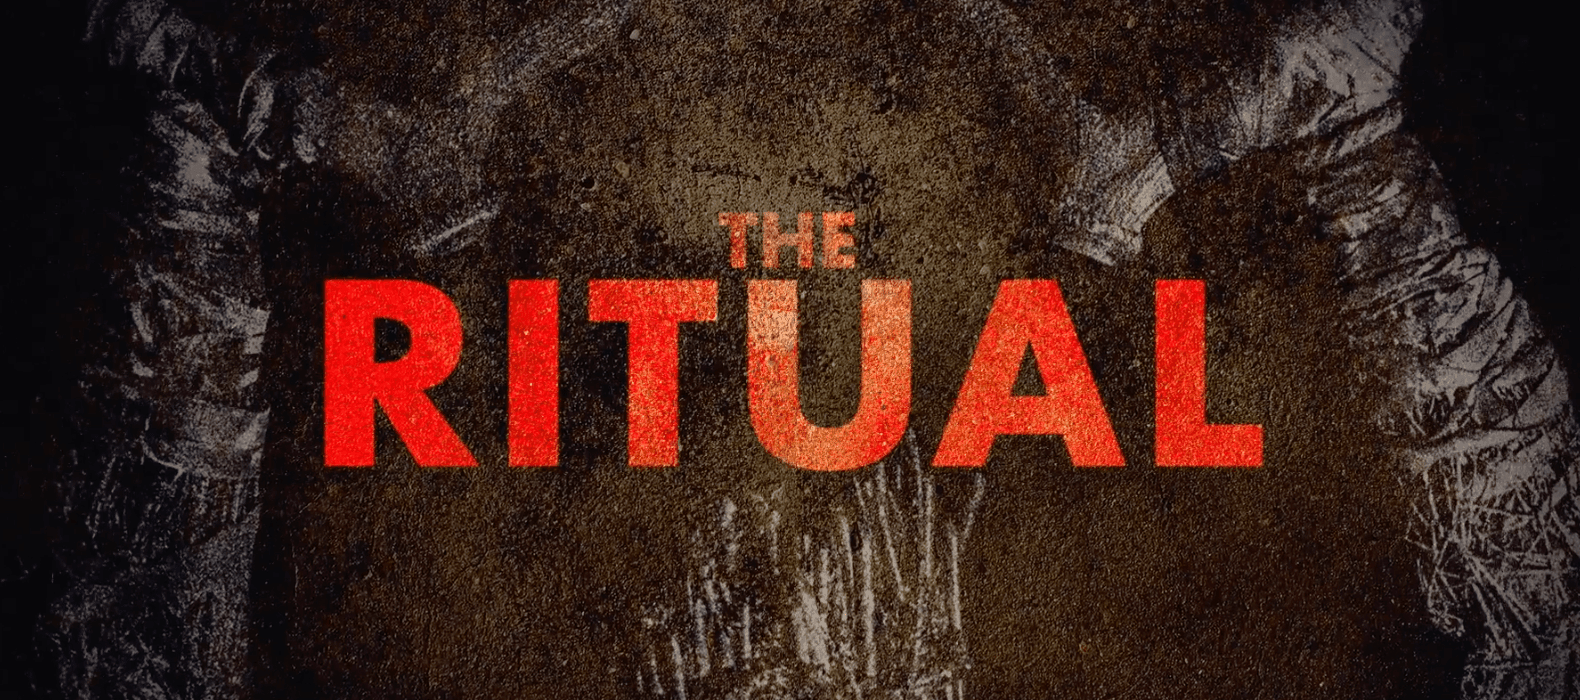 The Ritual: Memorial Holiday Gone Wrong?